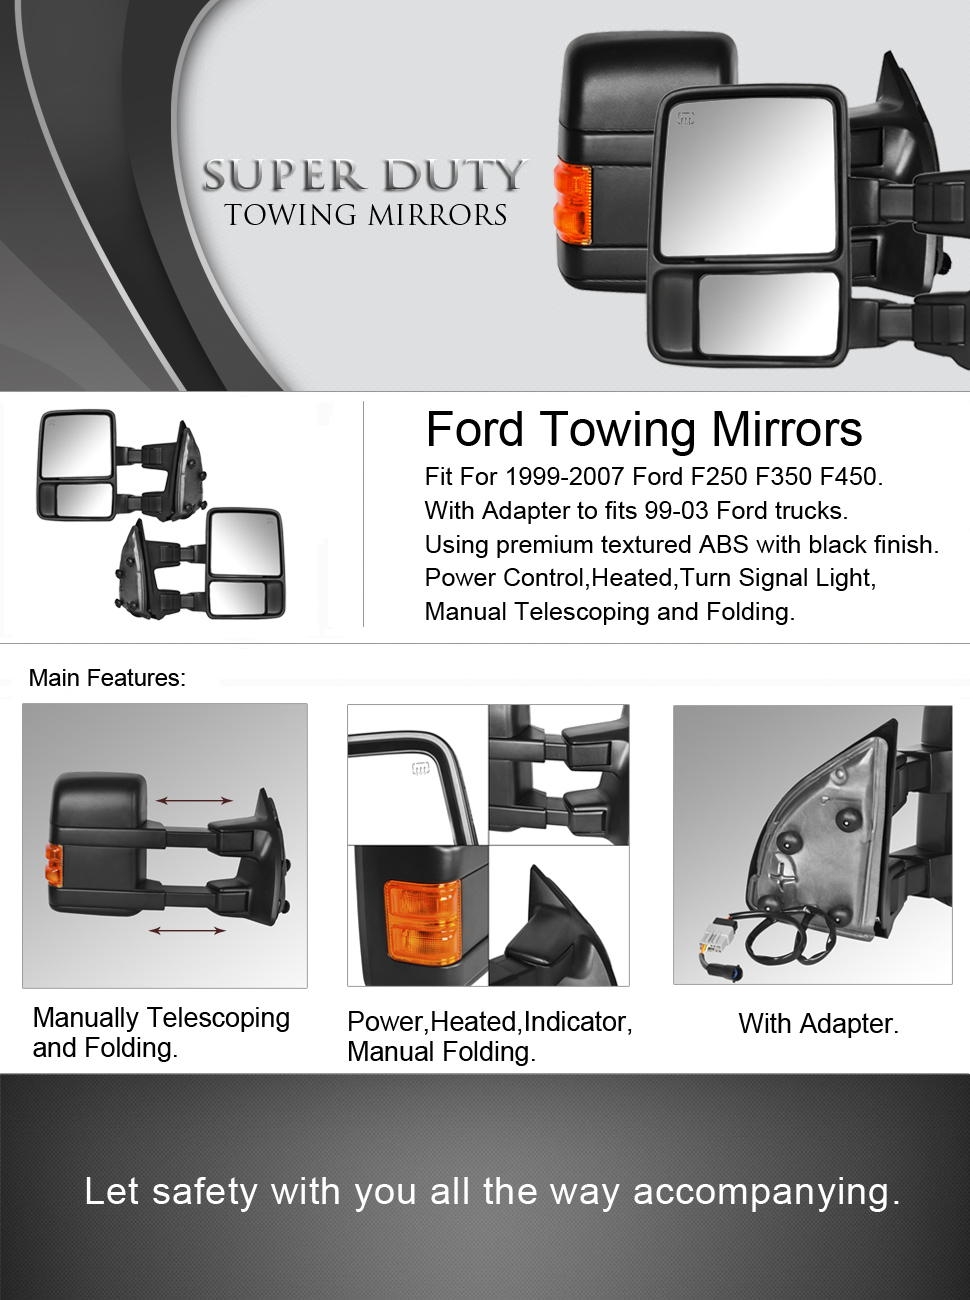 Amazon.com: DEDC Ford Towing Mirrors F250 Ford Tow Mirrors